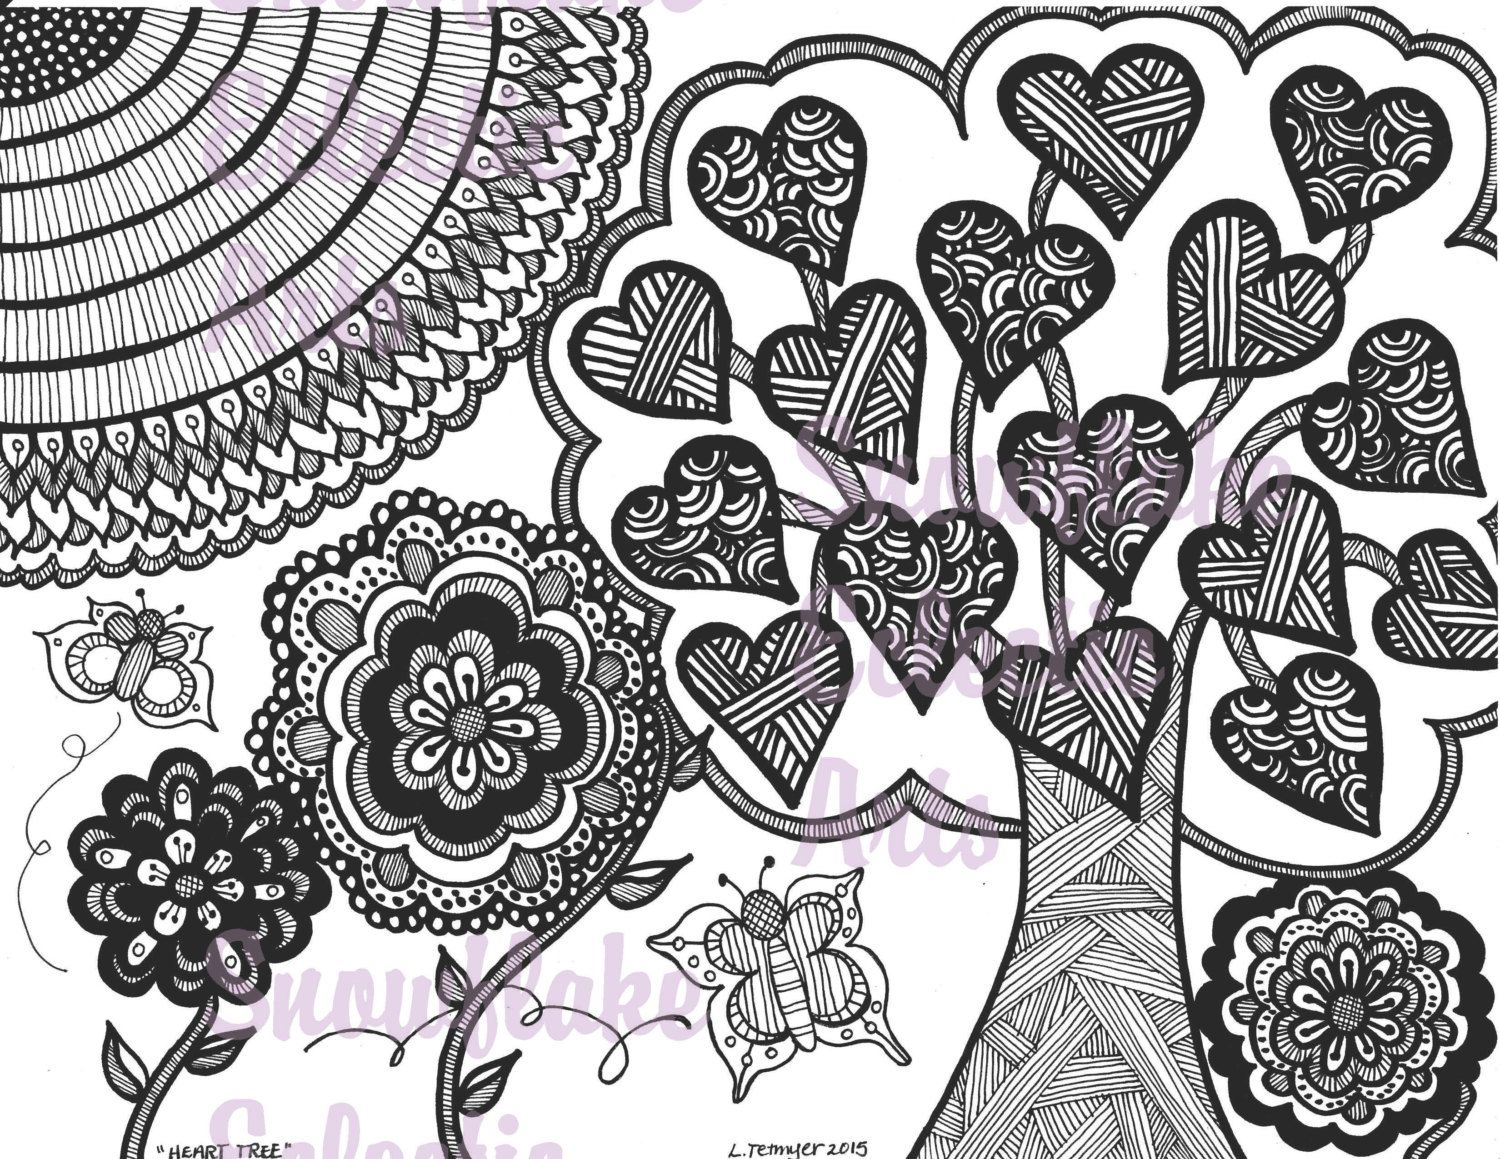 Pdf Of Coloring Pages : Diy coloring page instant pdf digital download printable color